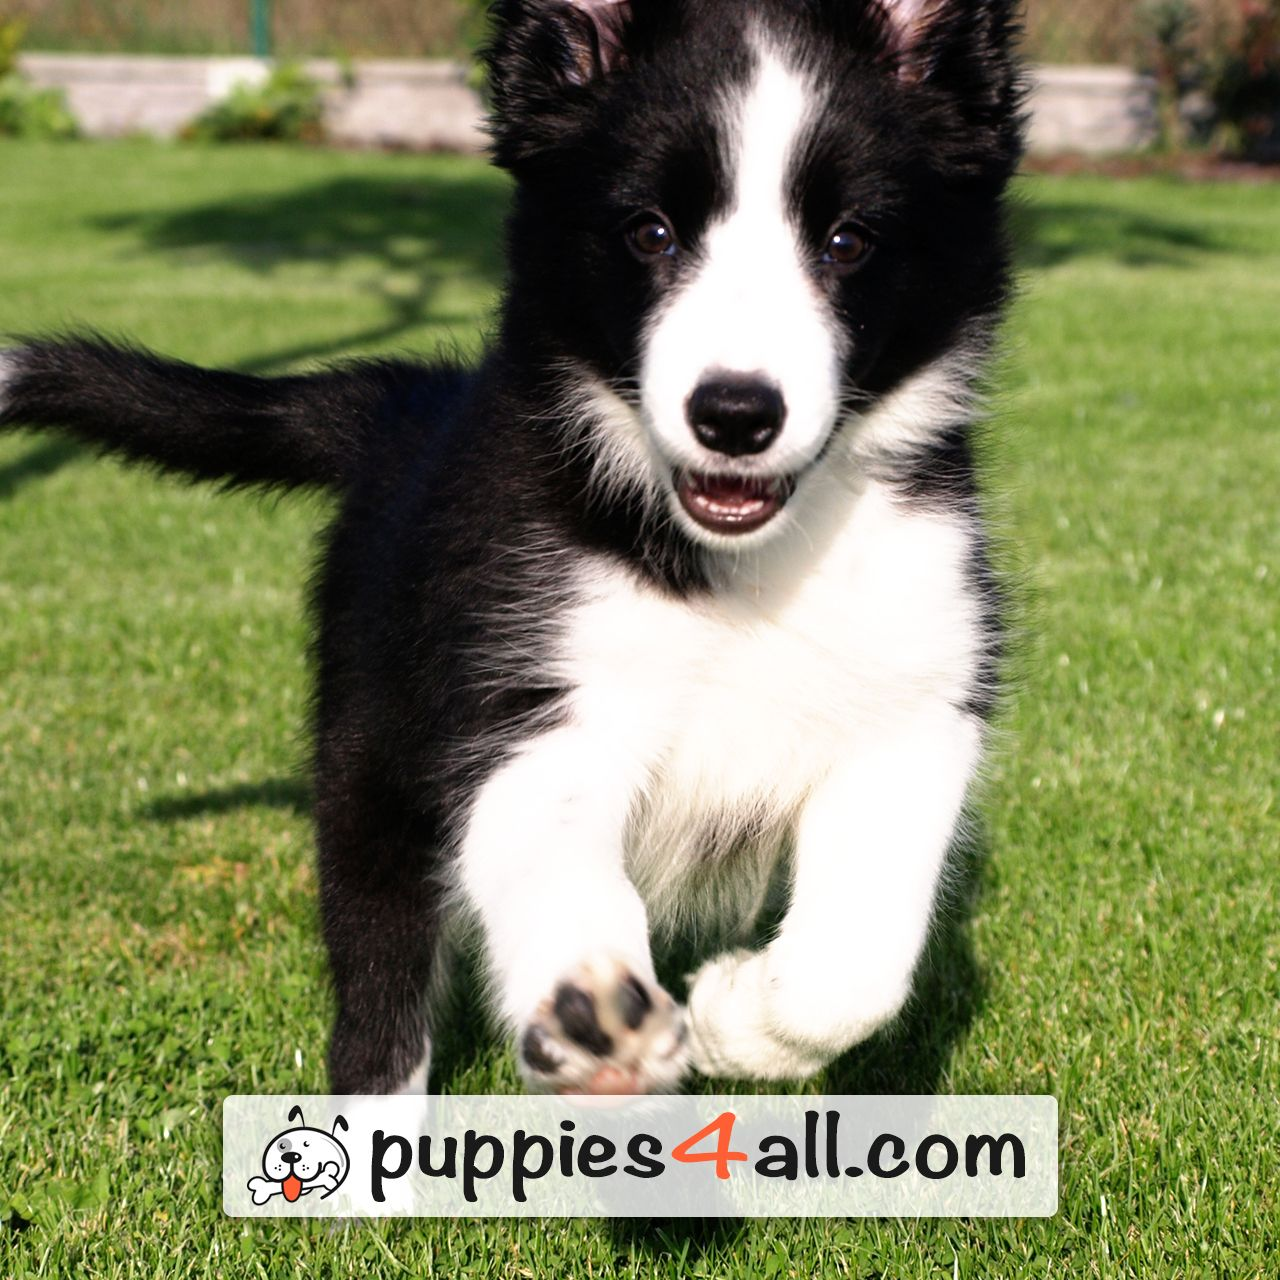 See how cute are those border collie puppies httpsyoutube see how cute are those border collie puppies https nvjuhfo Choice Image